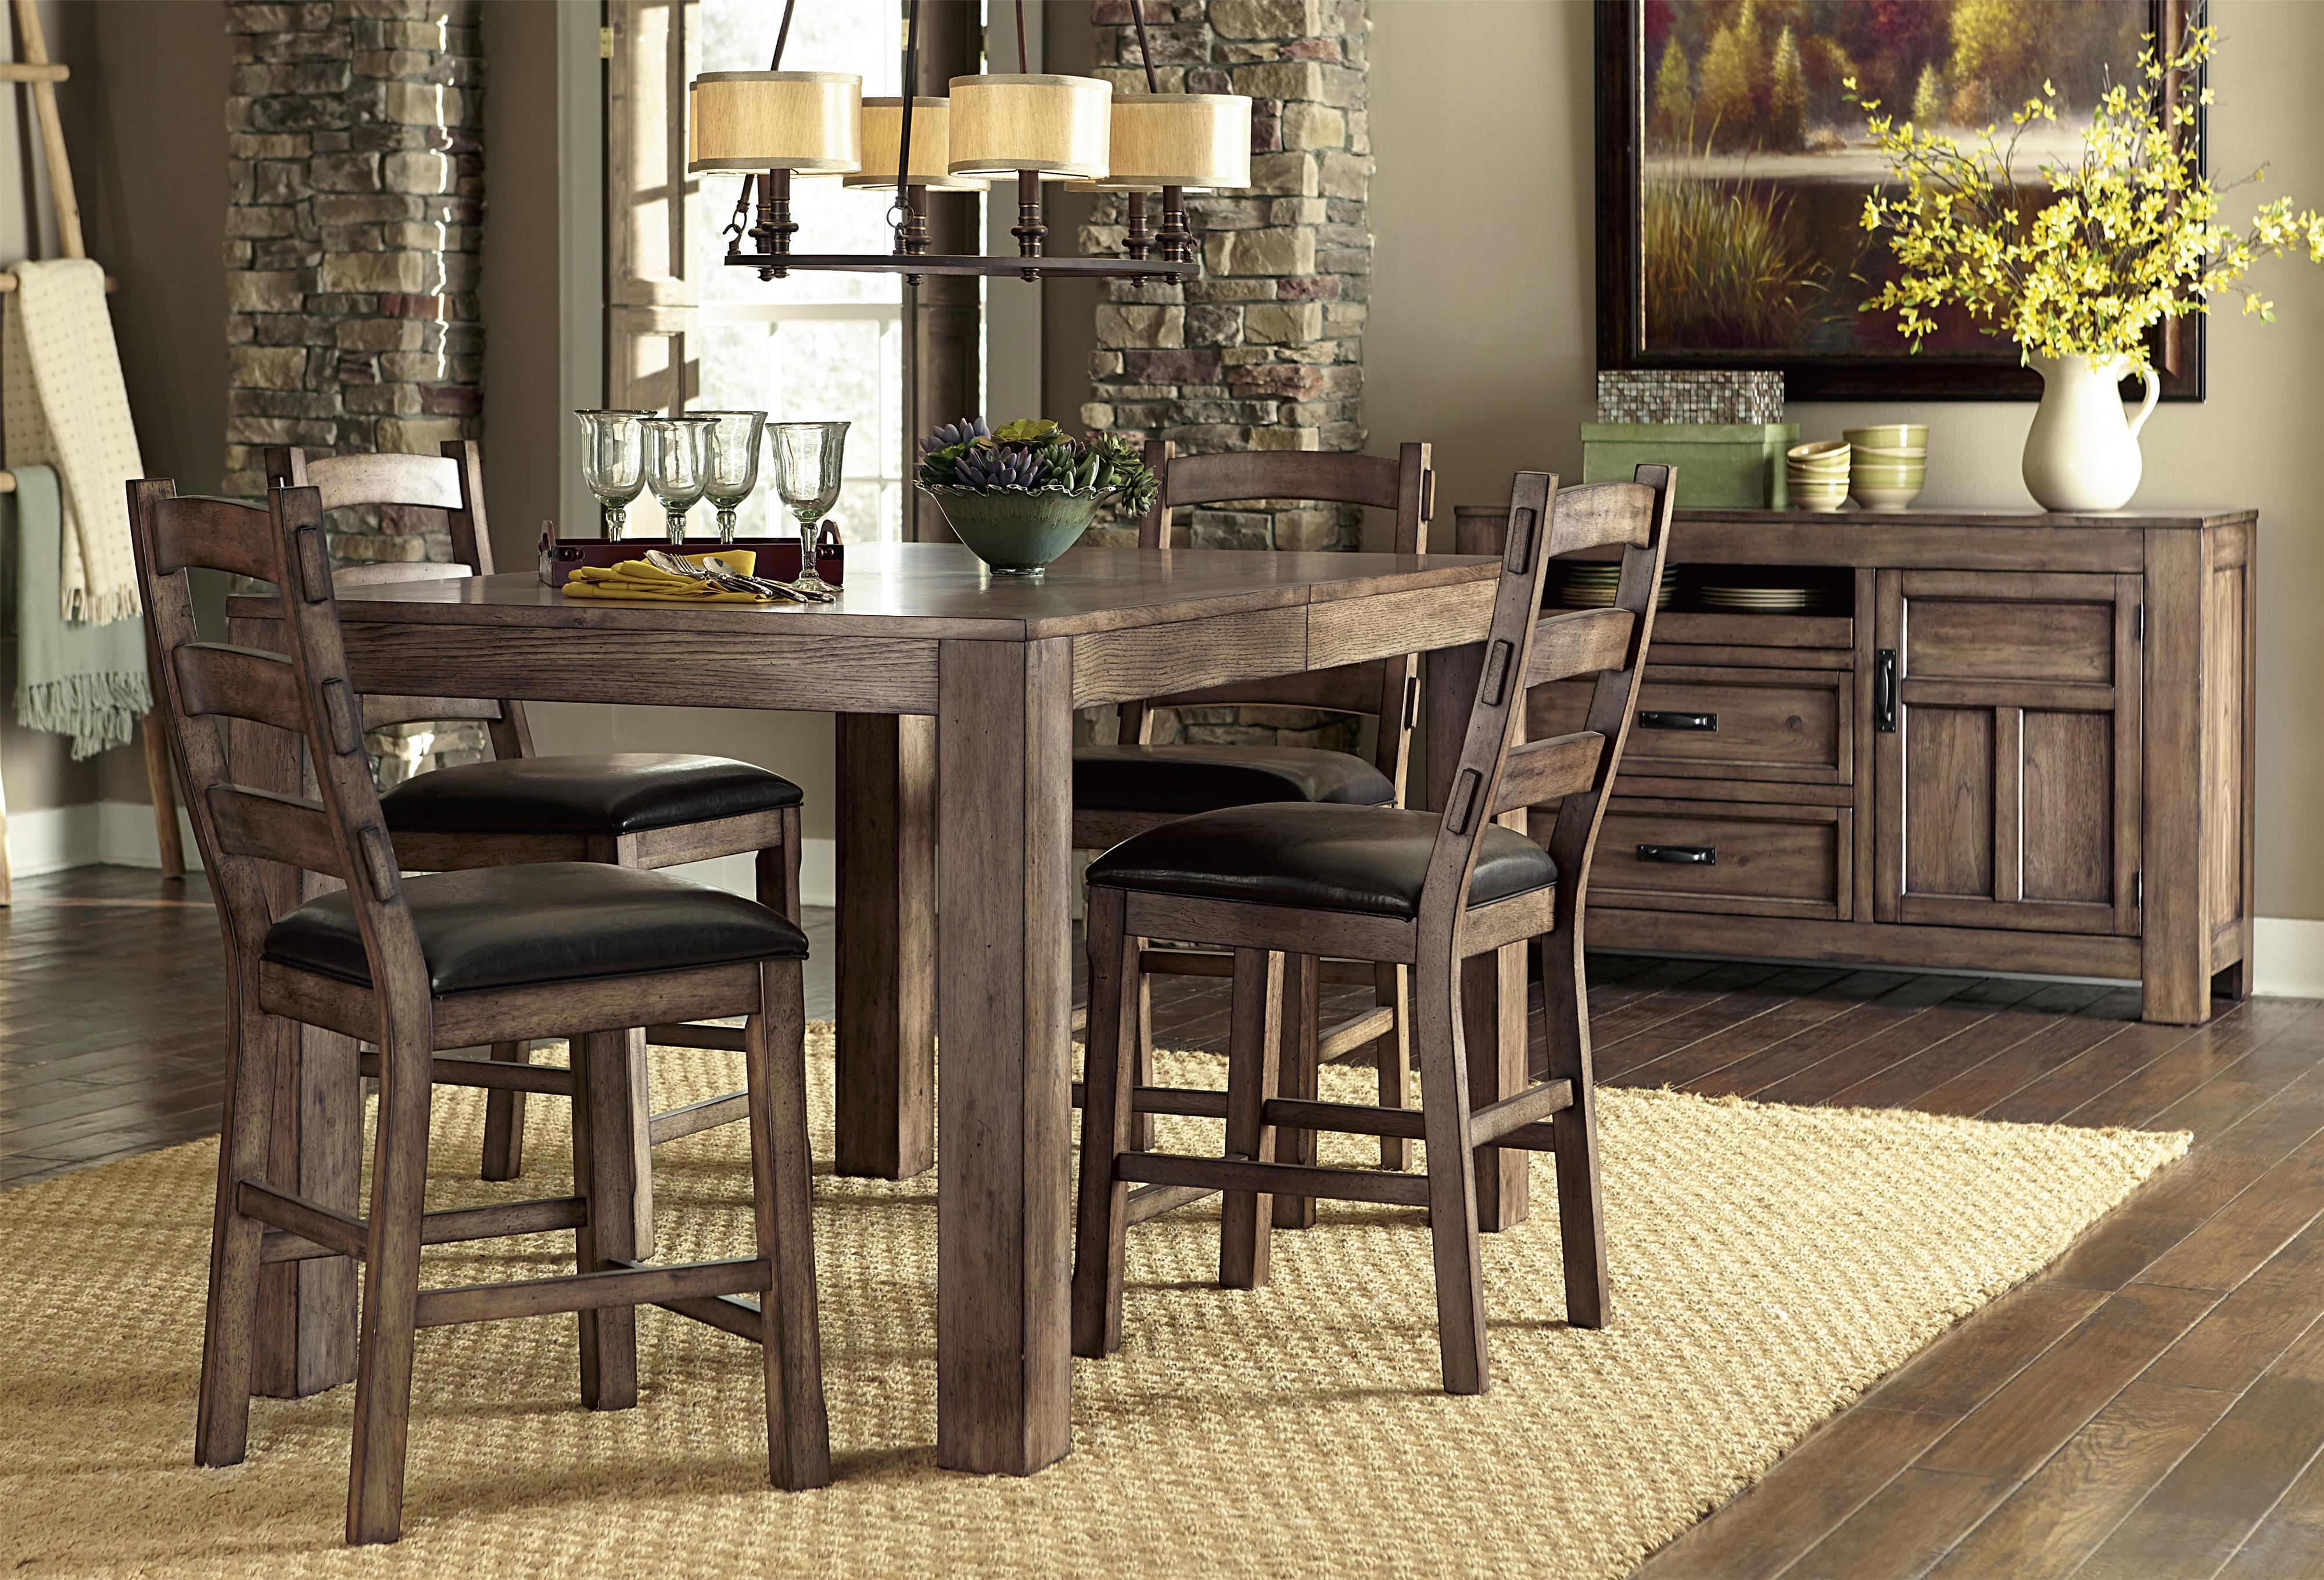 Progressive Furniture Boulder Creek Casual Dining Room Group - Item Number: P849 Dining Room Group 2